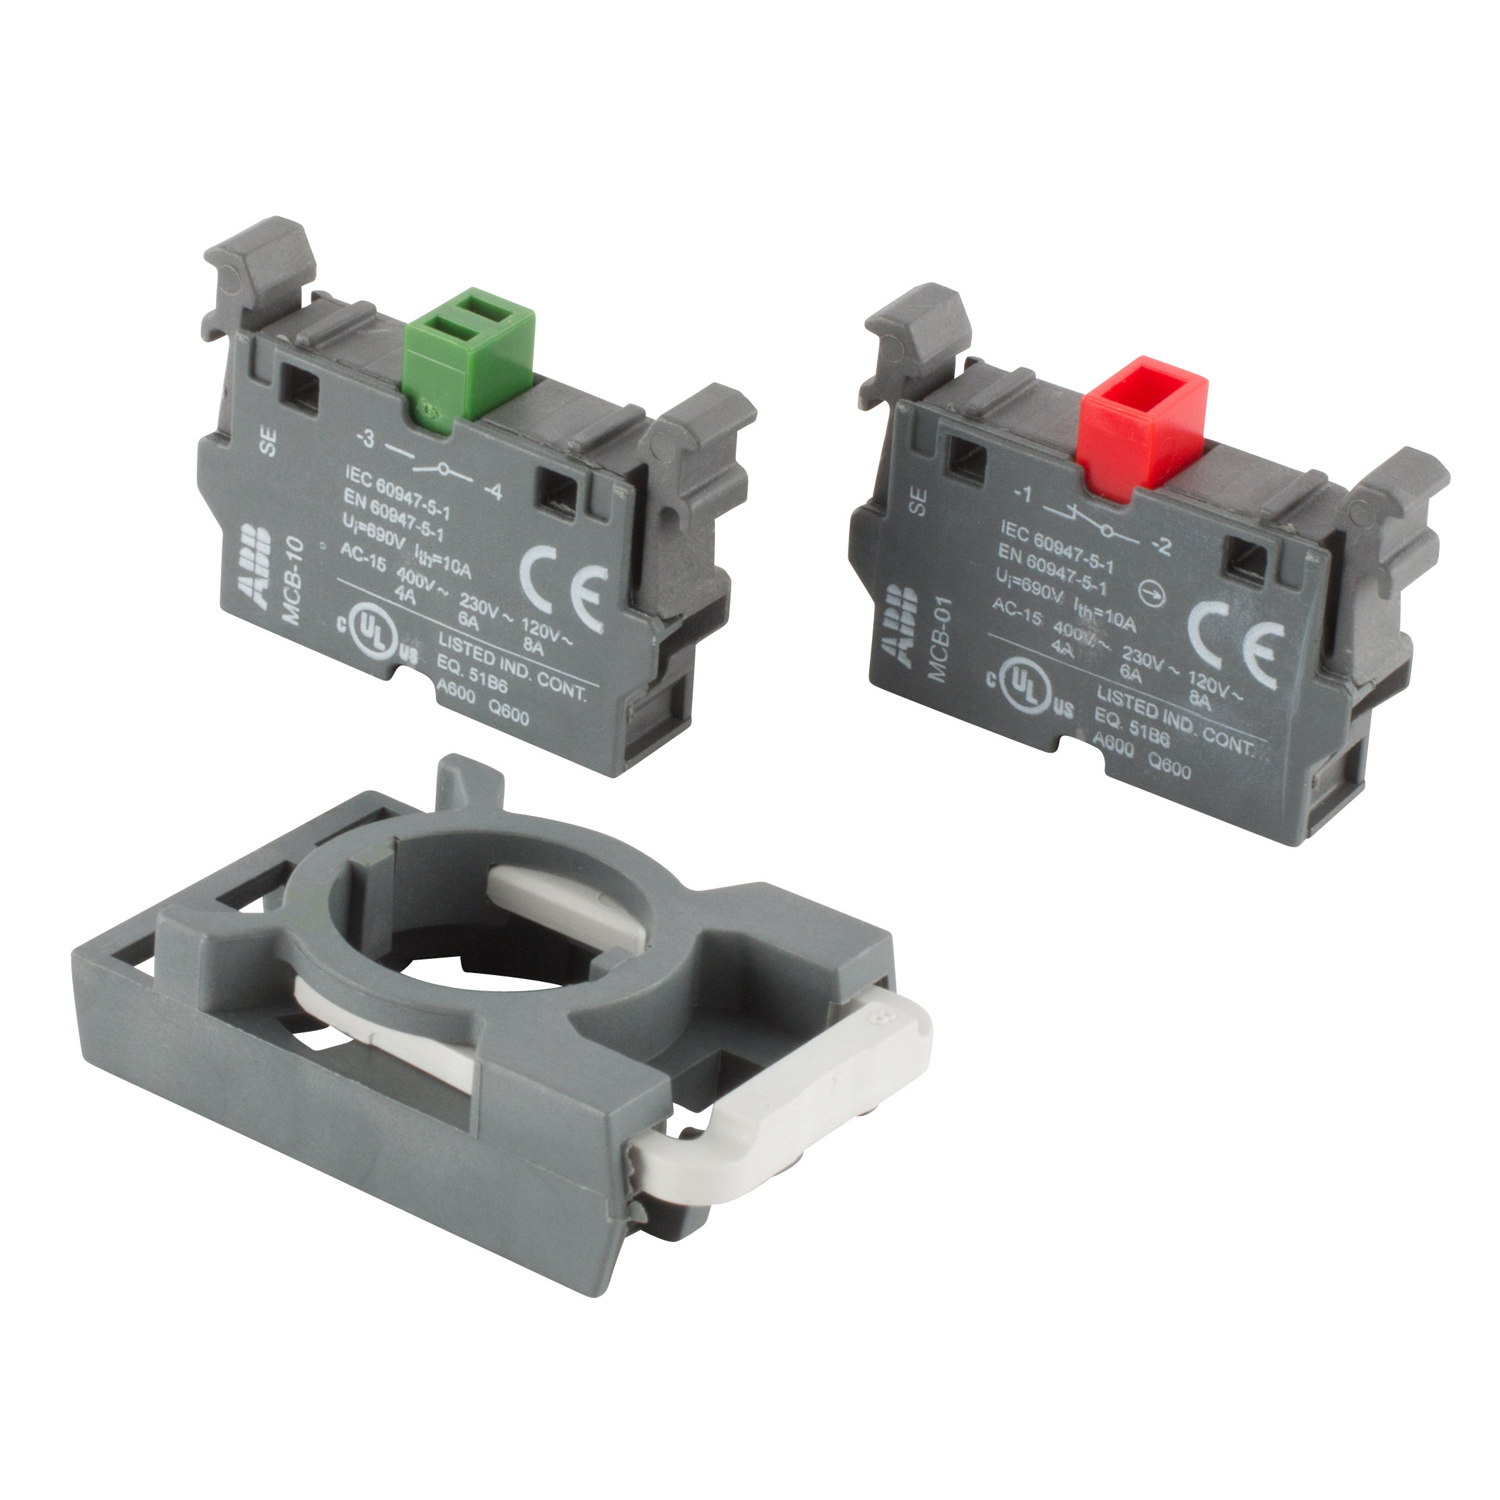 ABB MCBH-11 Front mounted 1 NO and 1 NC contact block and holder designed for non-illuminated operators